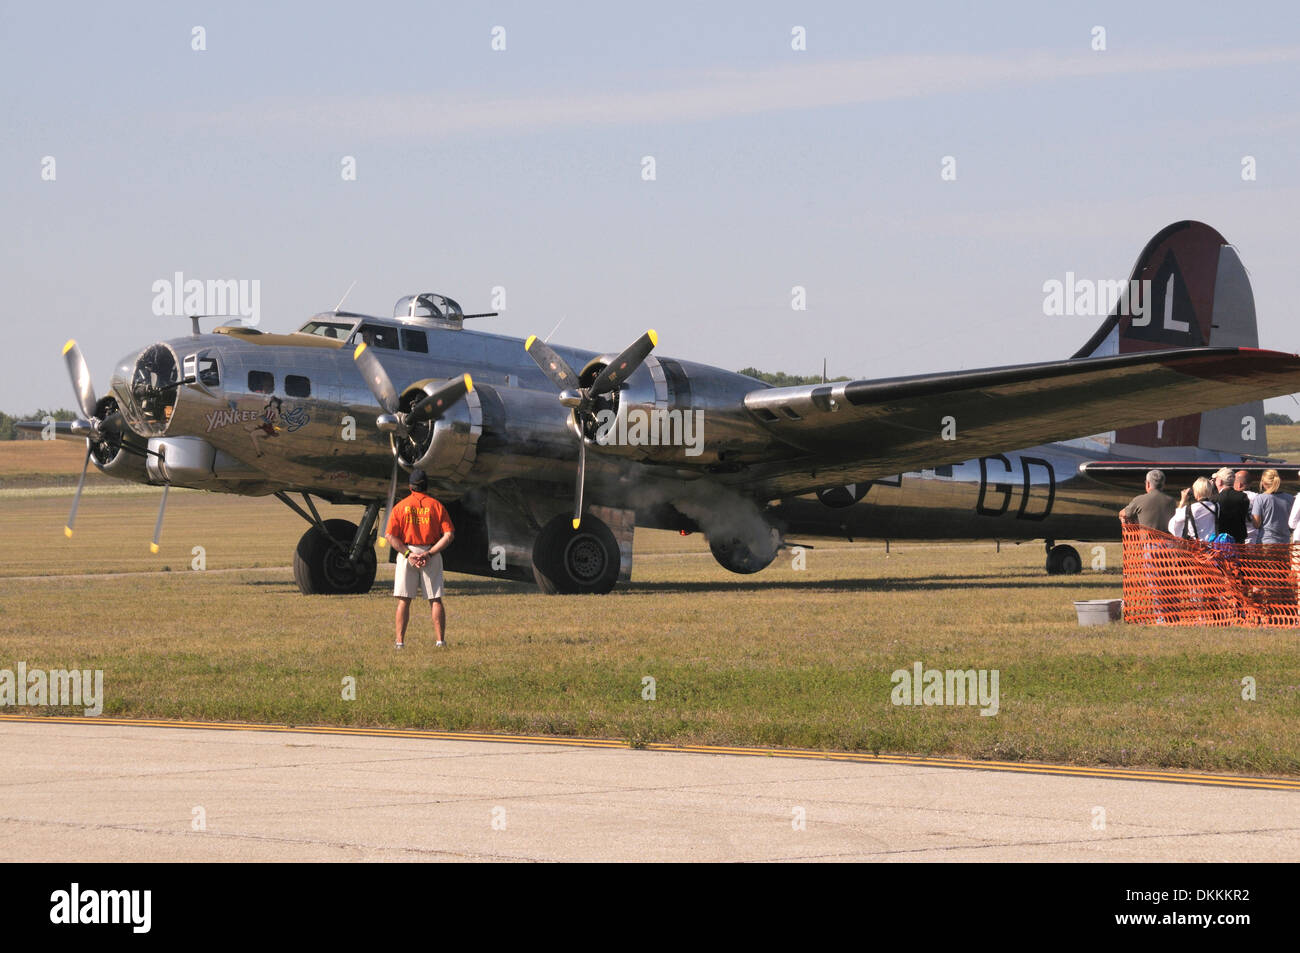 Boeng B1-17G Flying Fortress prepares to tke off for the air show in Bellville, Michigan while many look on Stock Photo